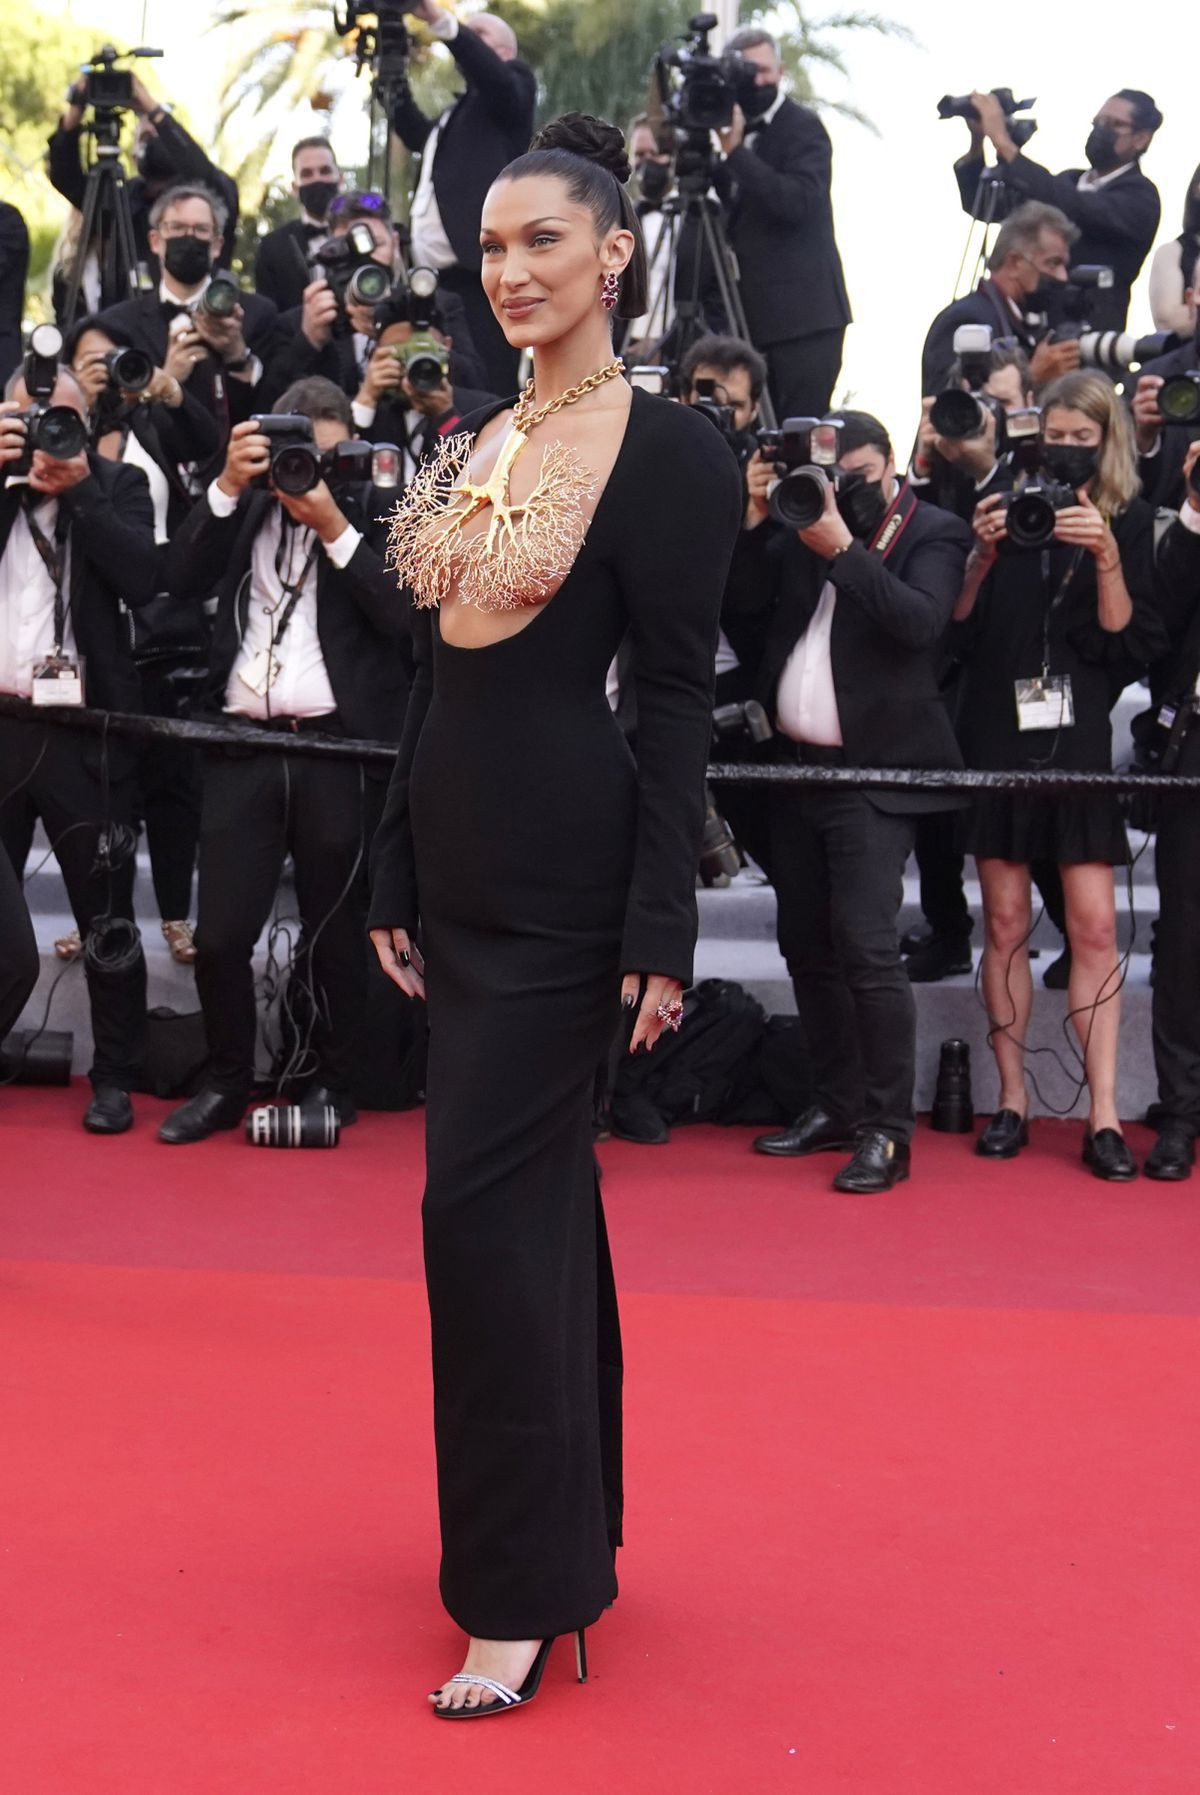 France Cannes 2021 Three Floors Red Carpet